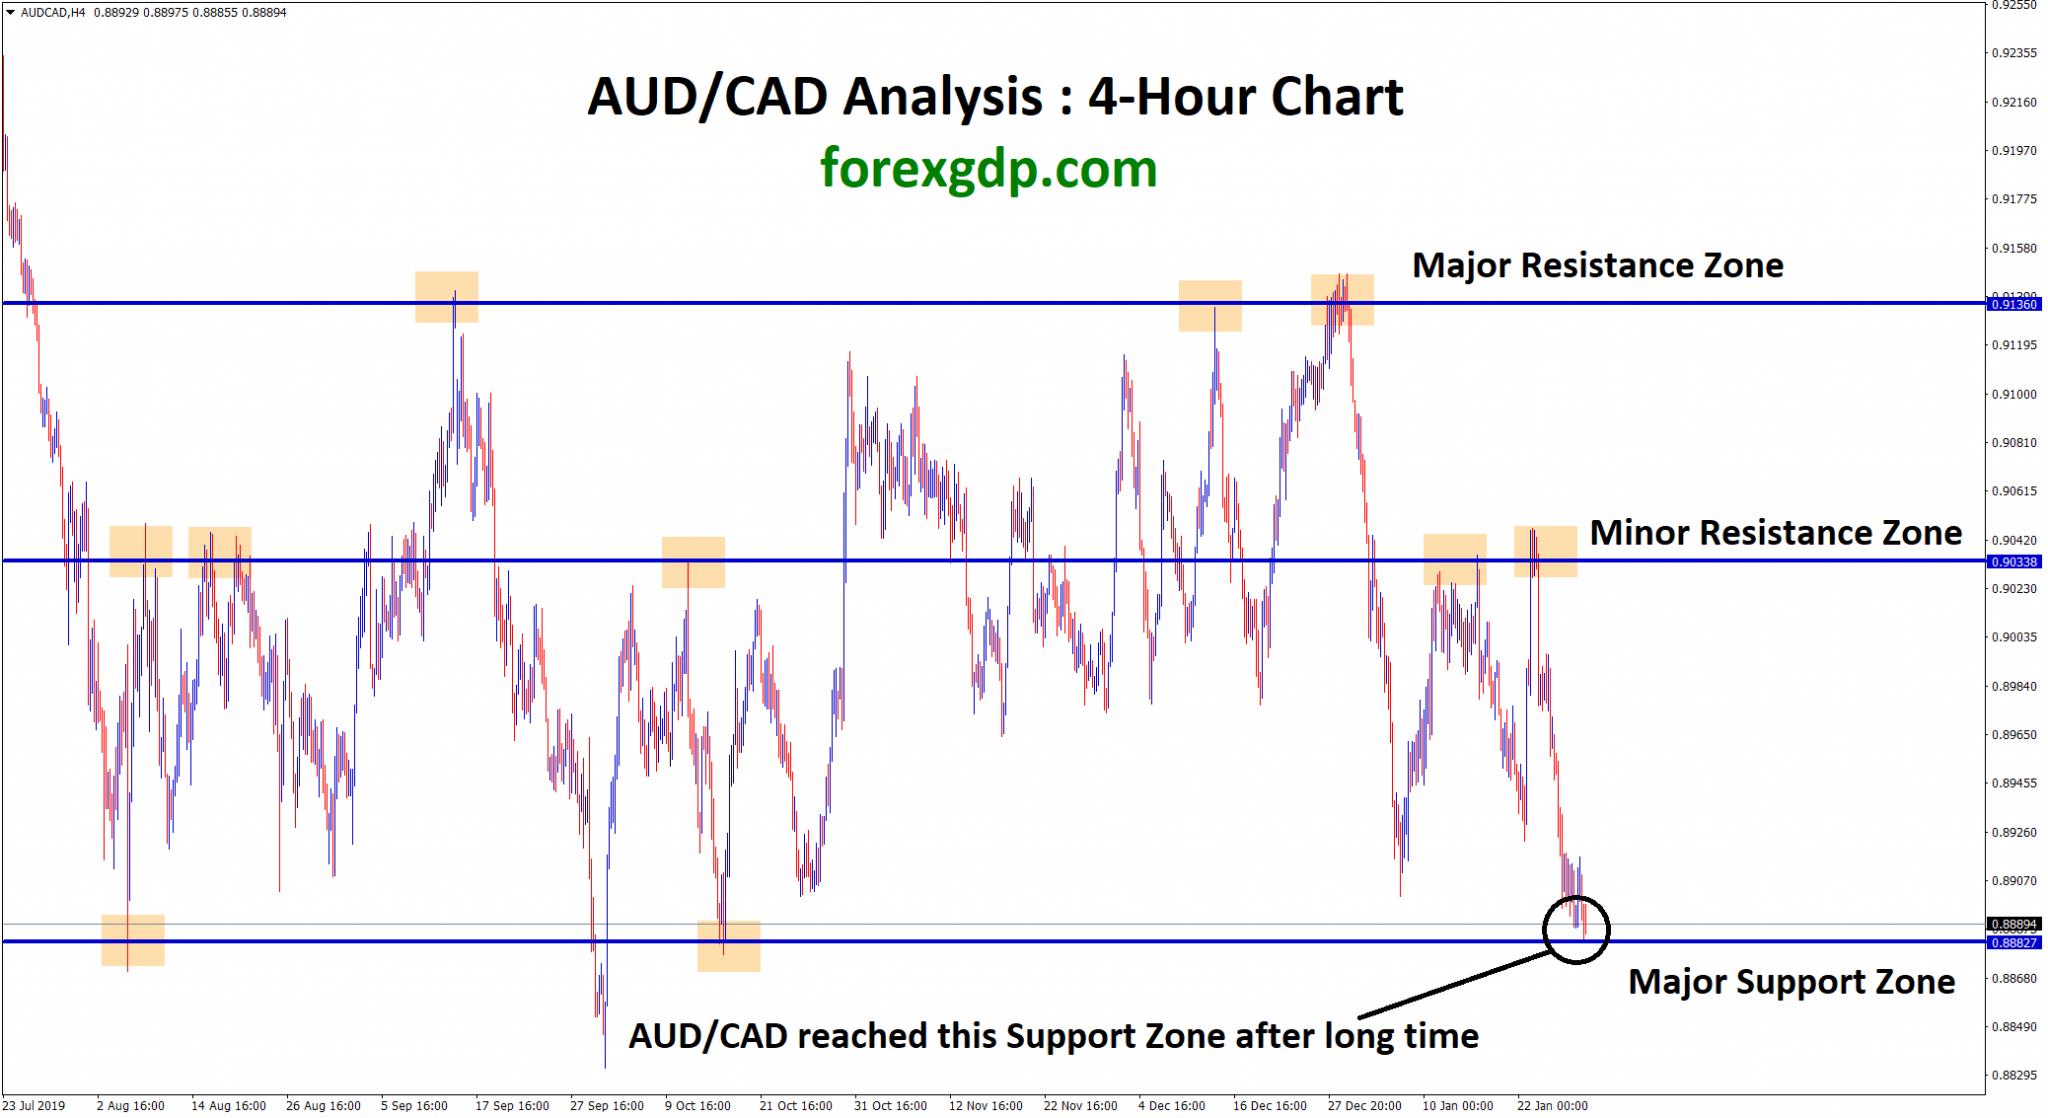 AUD CAD reached the strong support level now. waiting for reversal